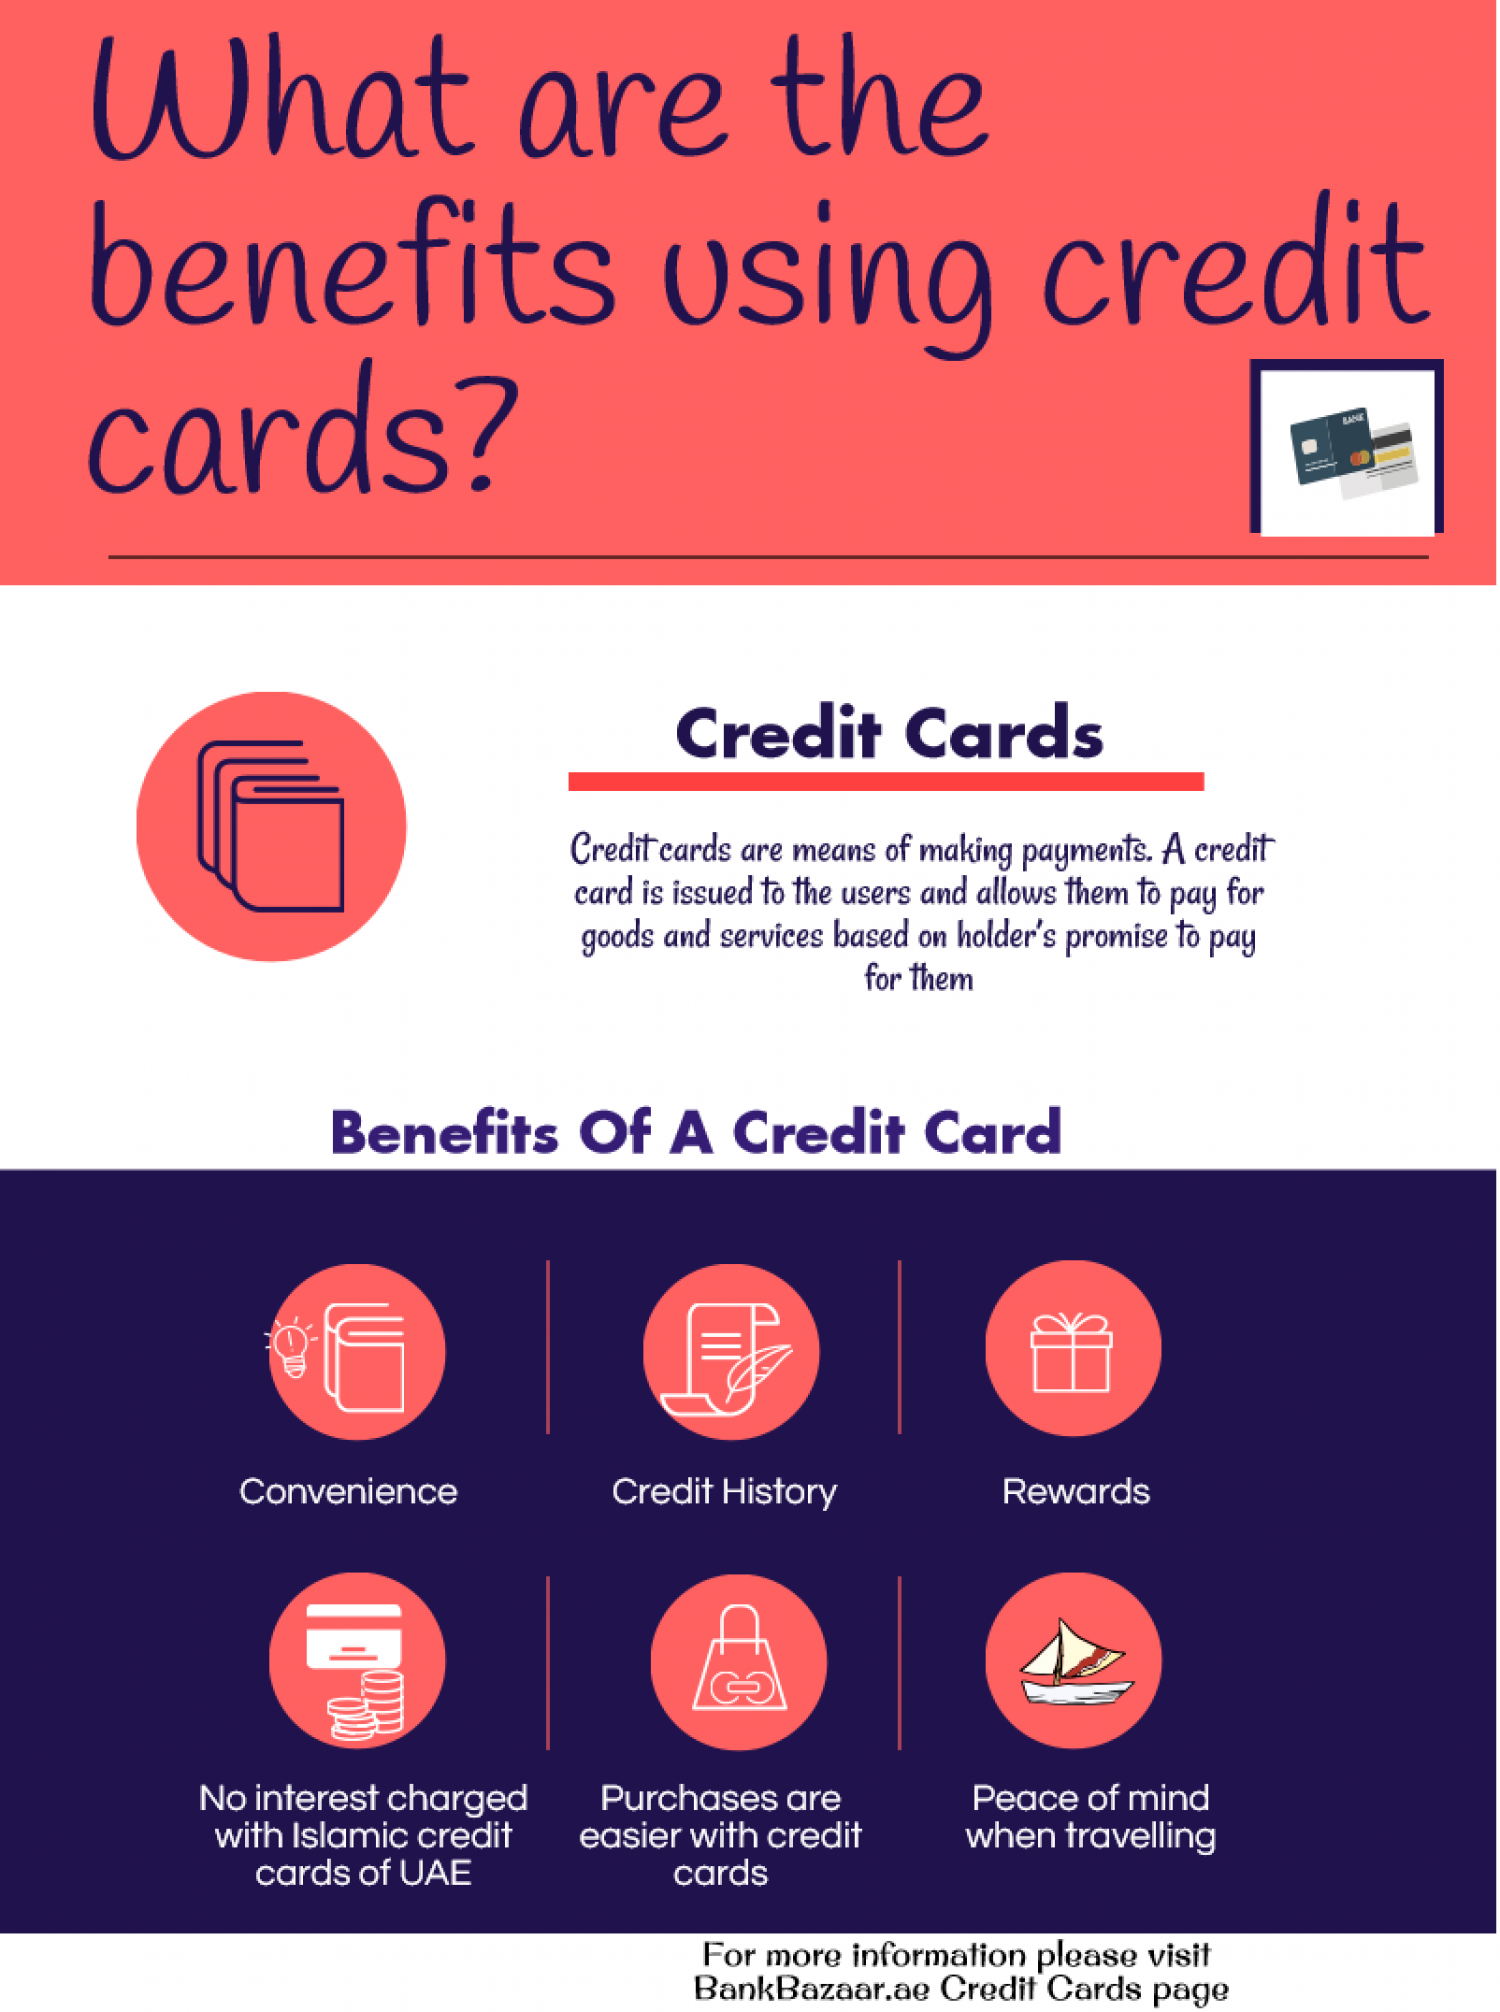 Benefits of using credit cards | Visual.ly